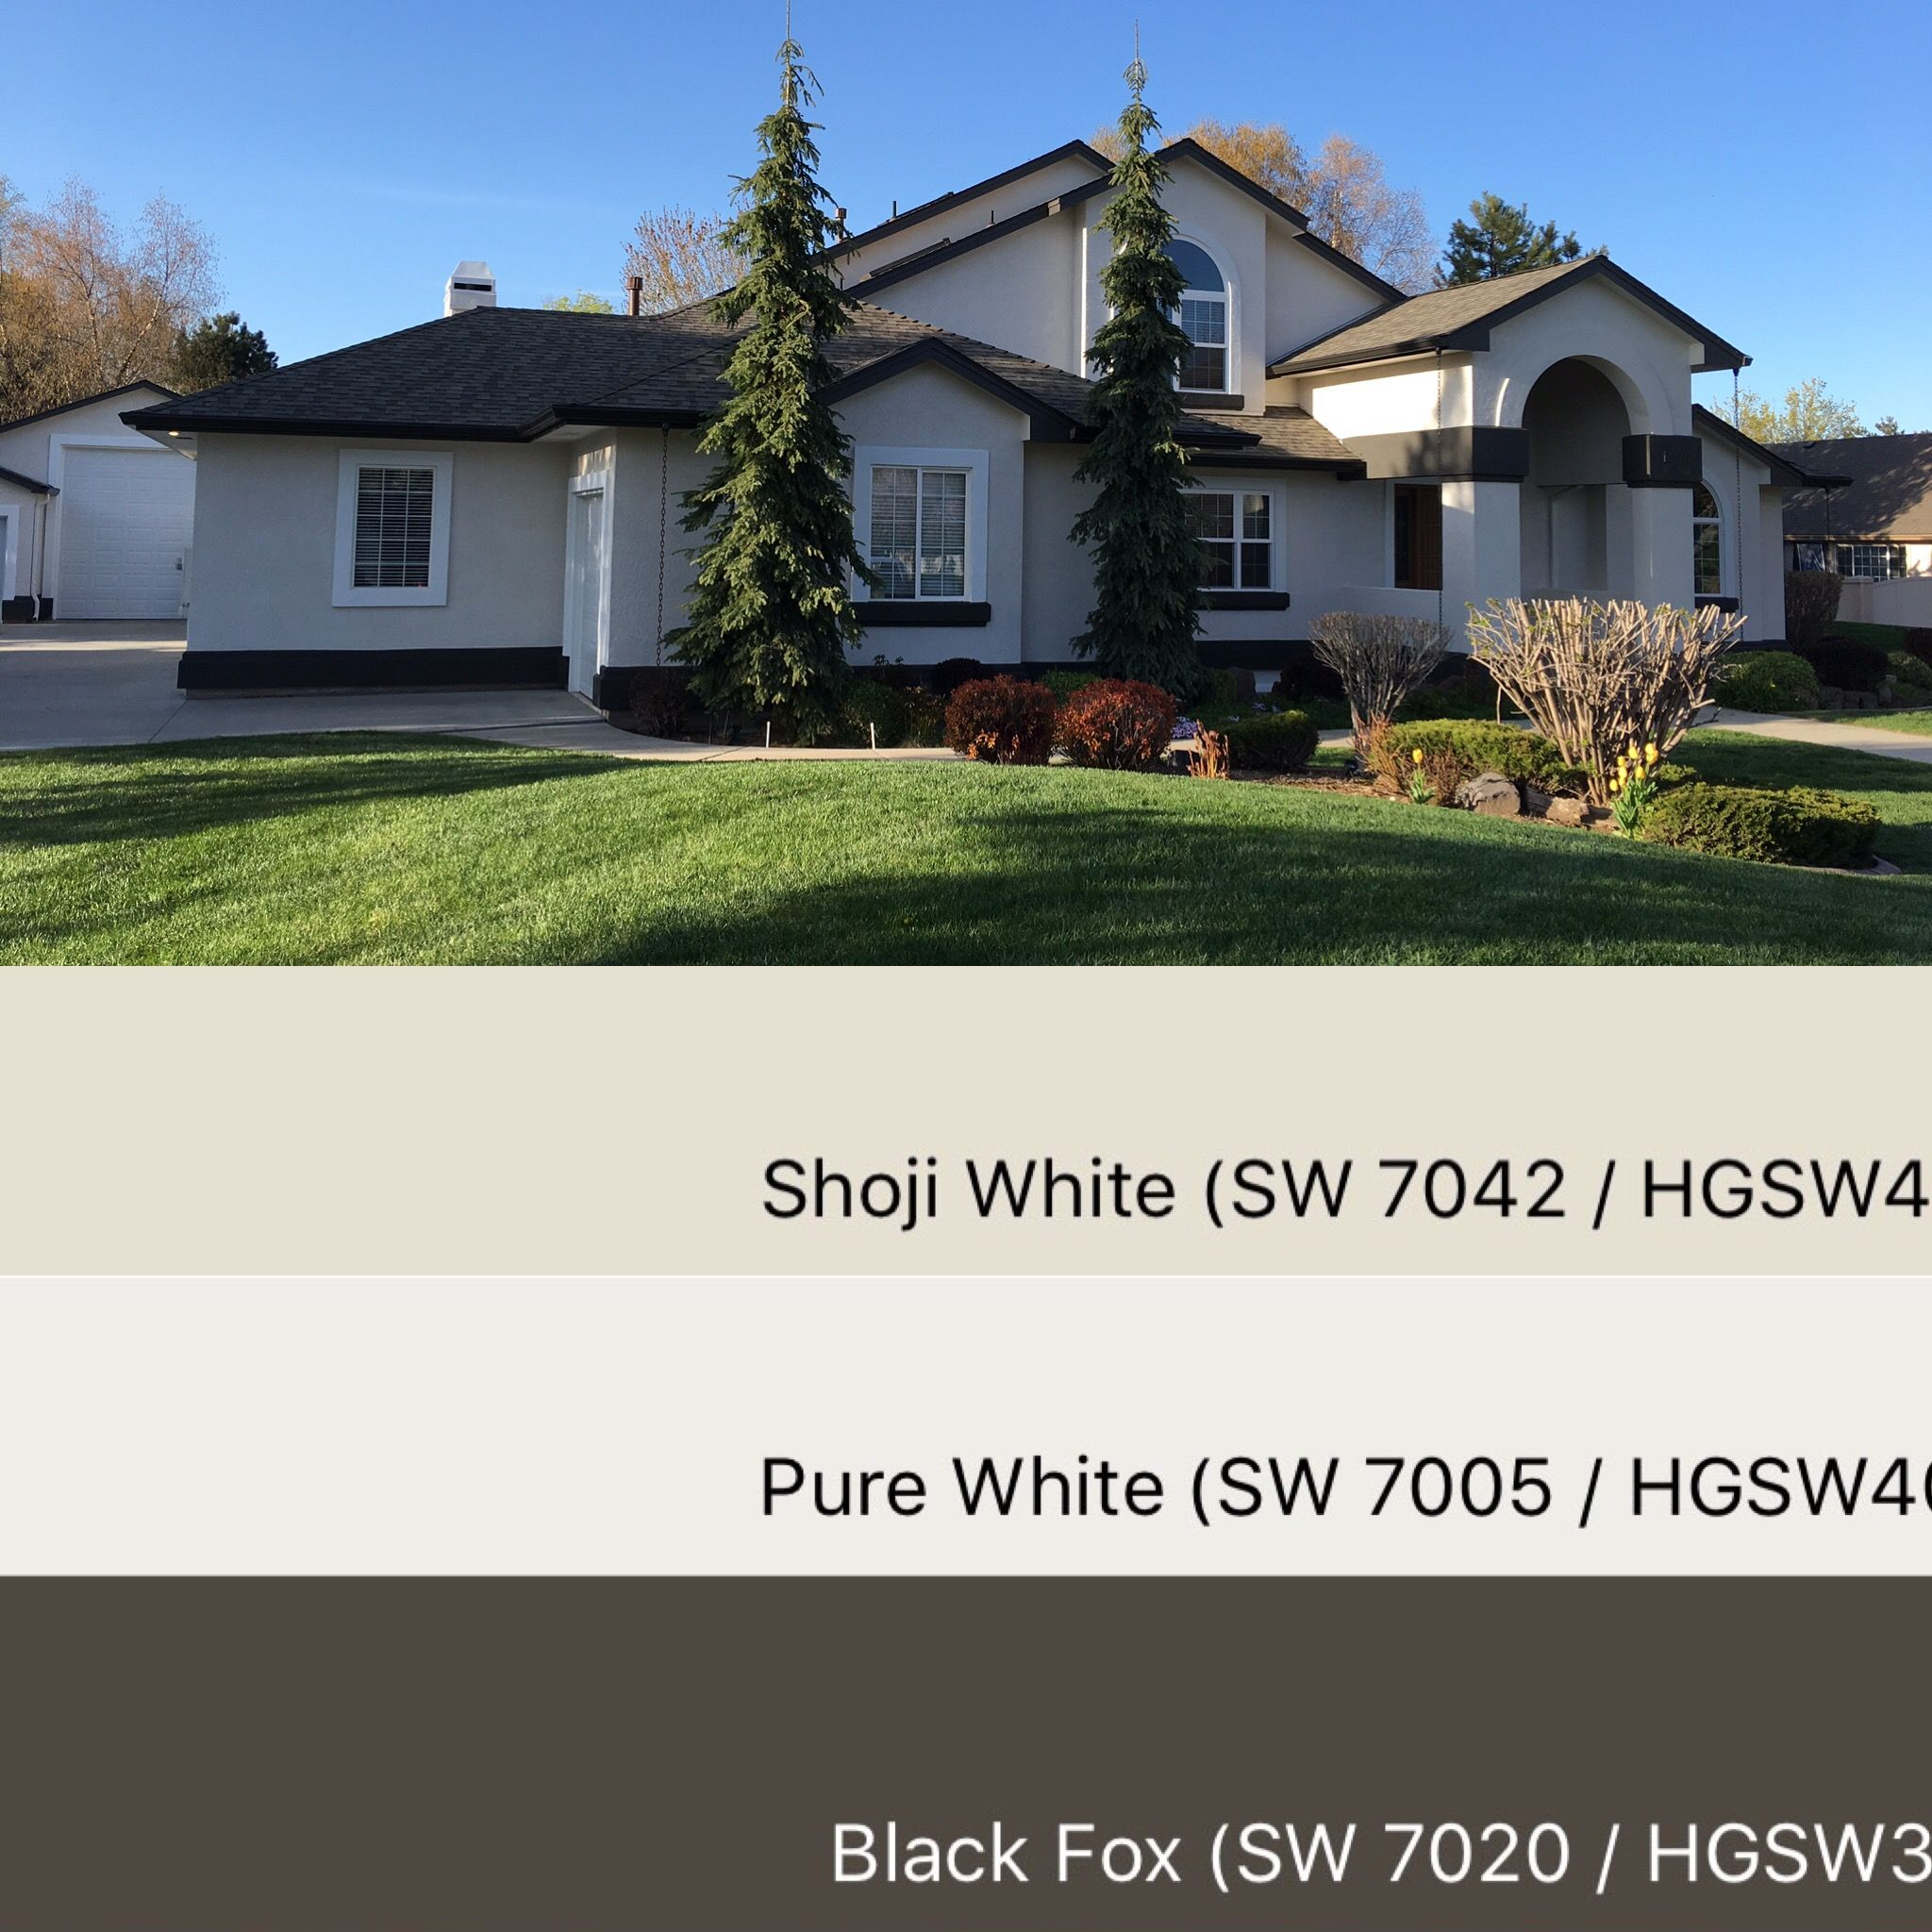 Sherwin williams paint colors shoji white 7042 pure - Sherwin williams black fox exterior ...